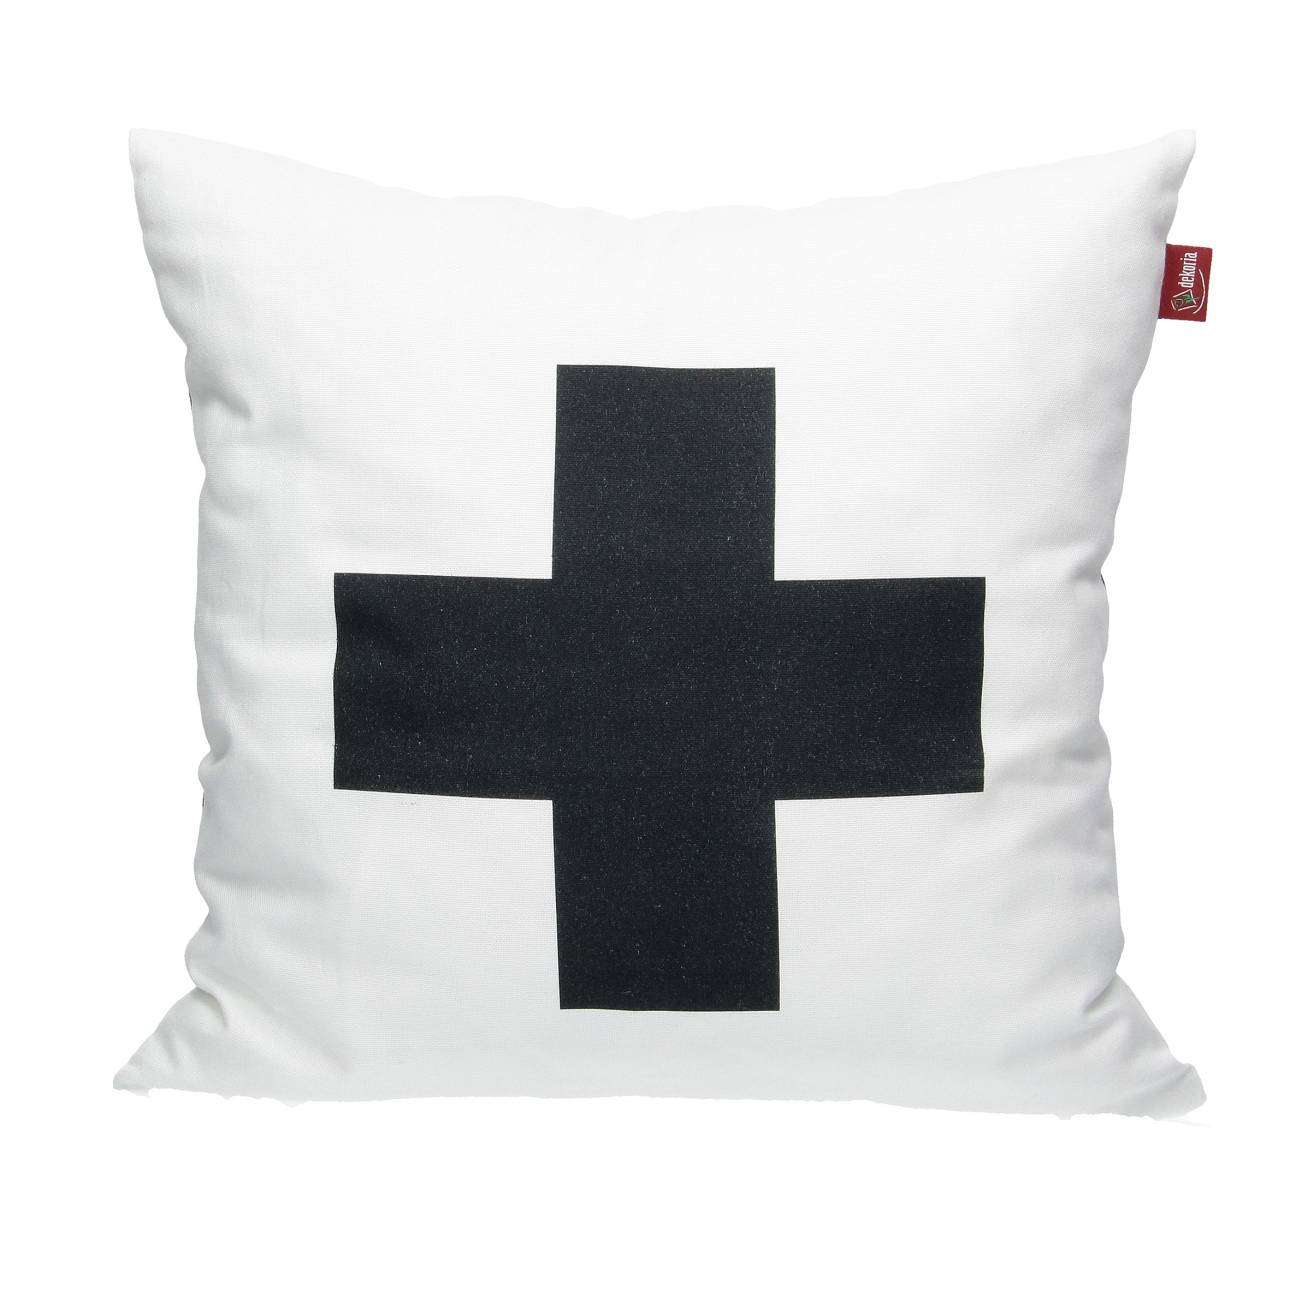 Plus Print Cushion Cover 45x45cm